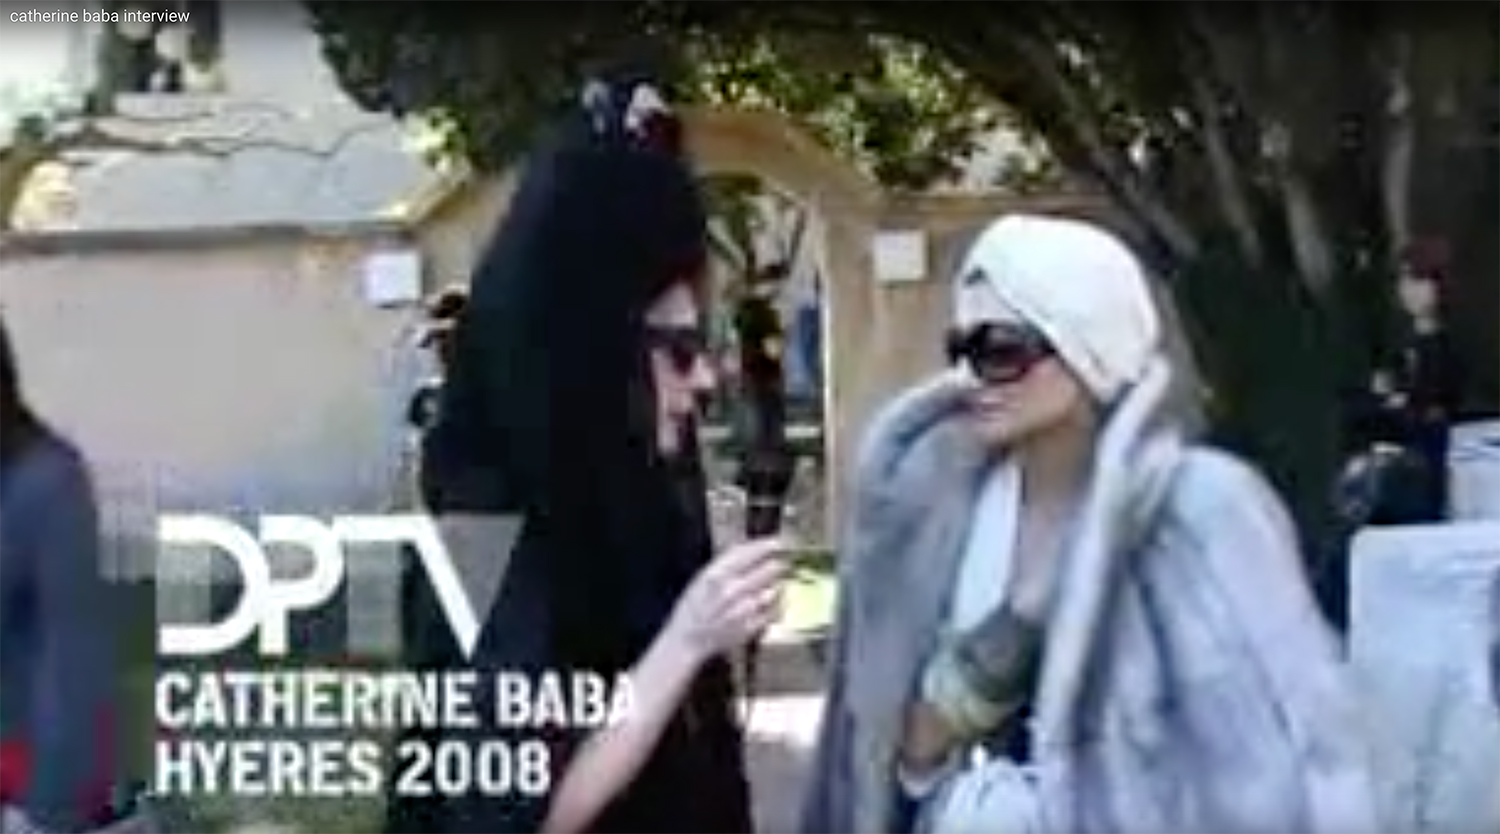 DP TV NVU WITH CATHERINE BABA  2008